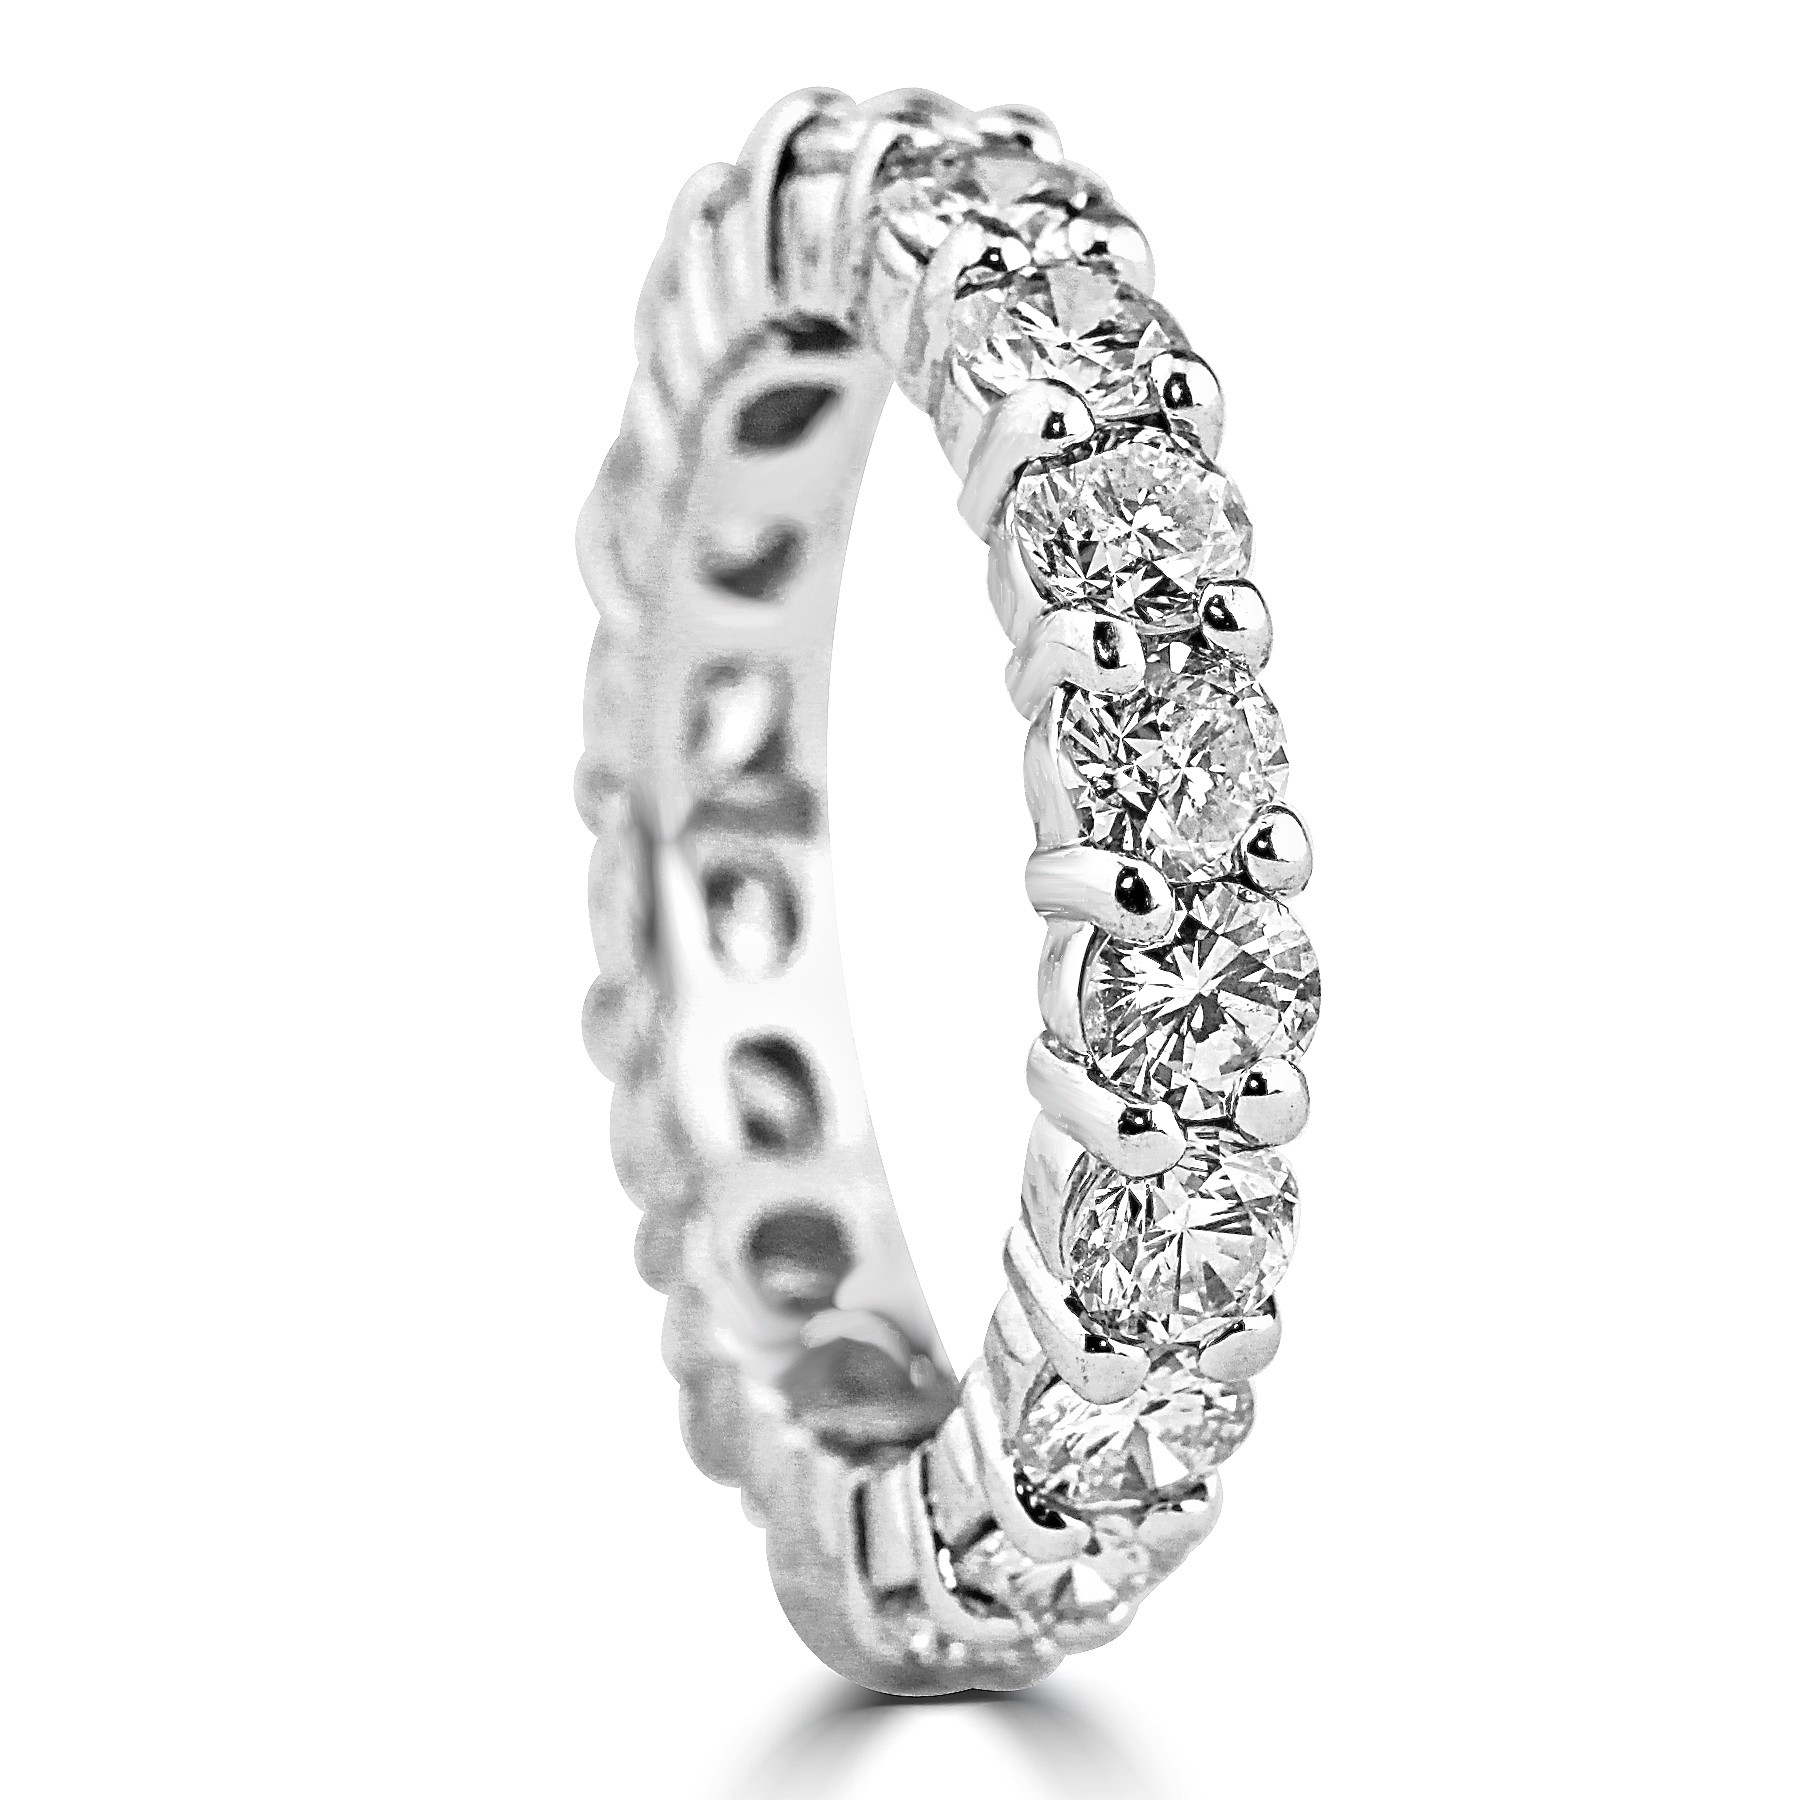 cleef all band van and cut diamond wedding bands eternity round arpels ring baguette jewelry